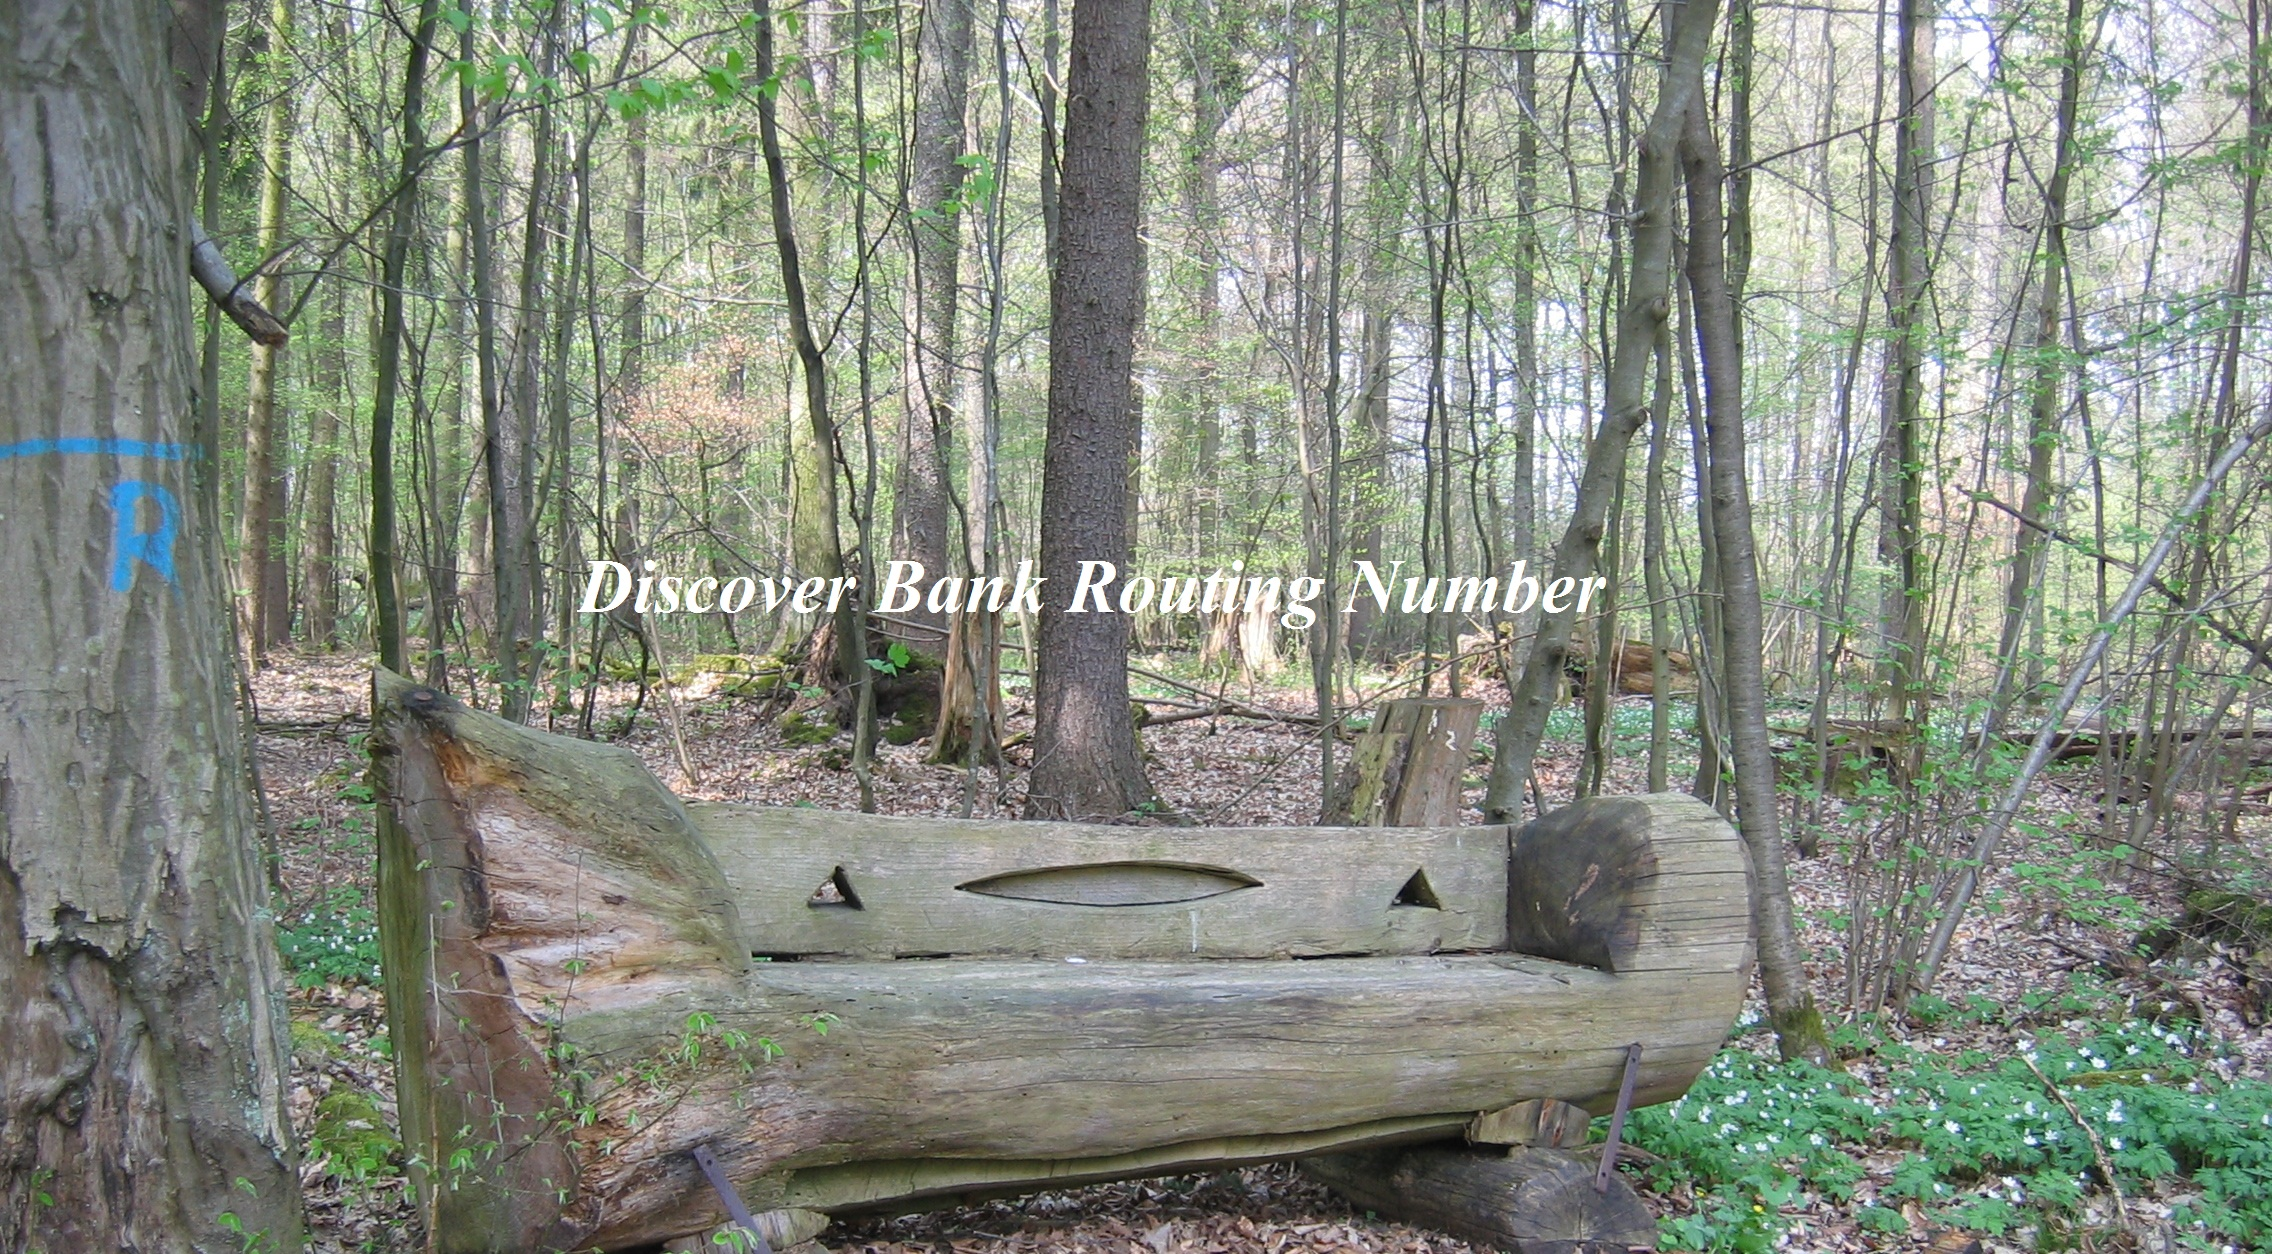 Discover Bank Routing Number